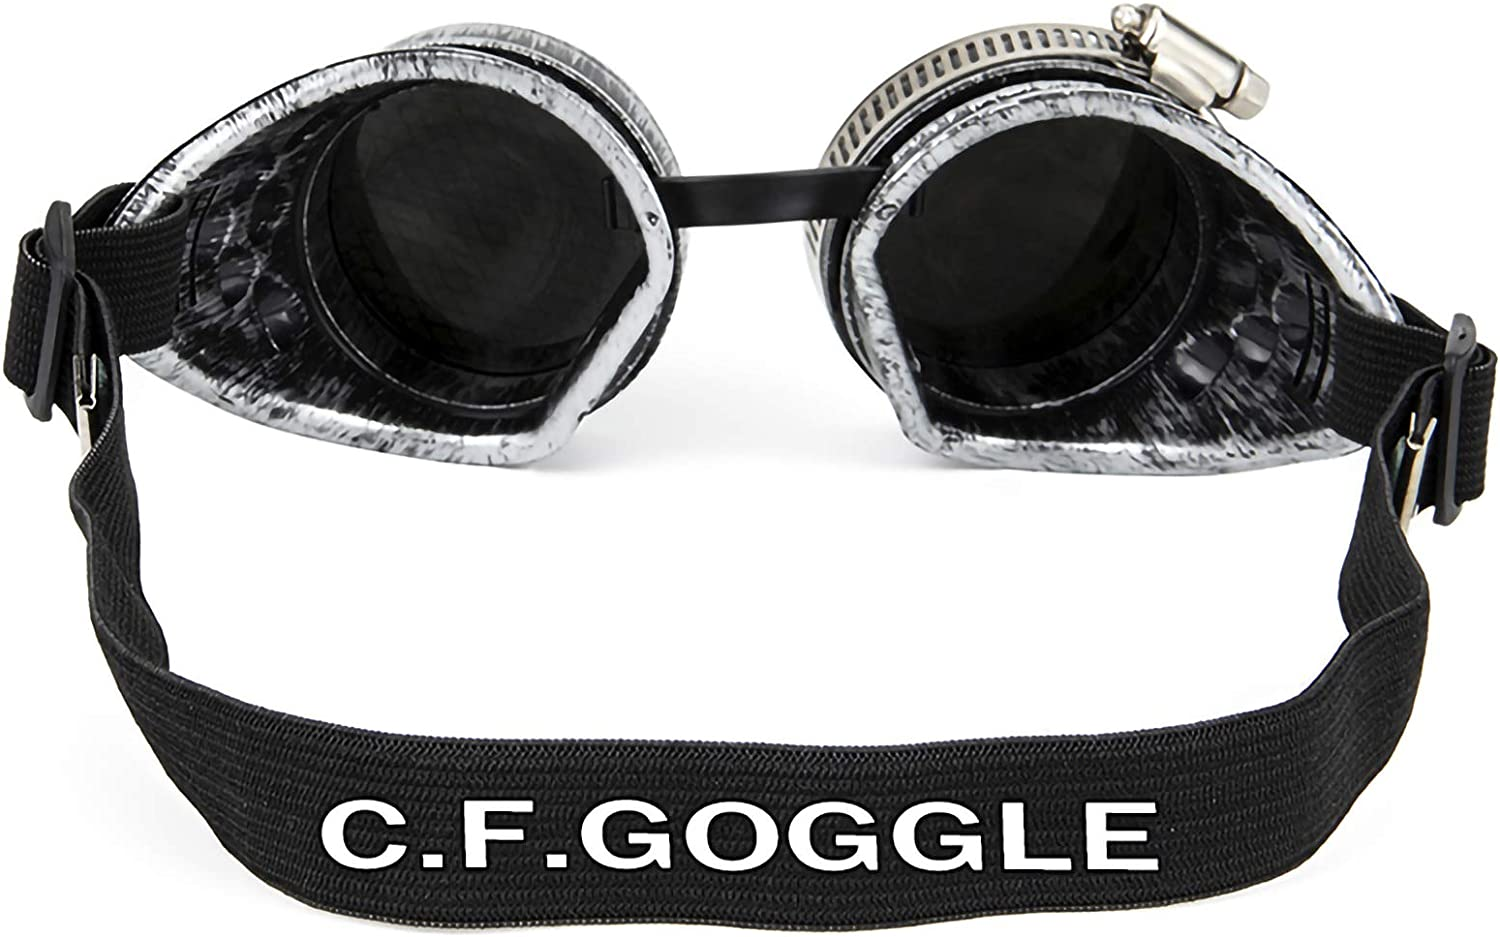 Vintage Steampunk Goggles Cosplay Kaleidoscope Glasses Ocular Loupe Eyewear Costume Accessory